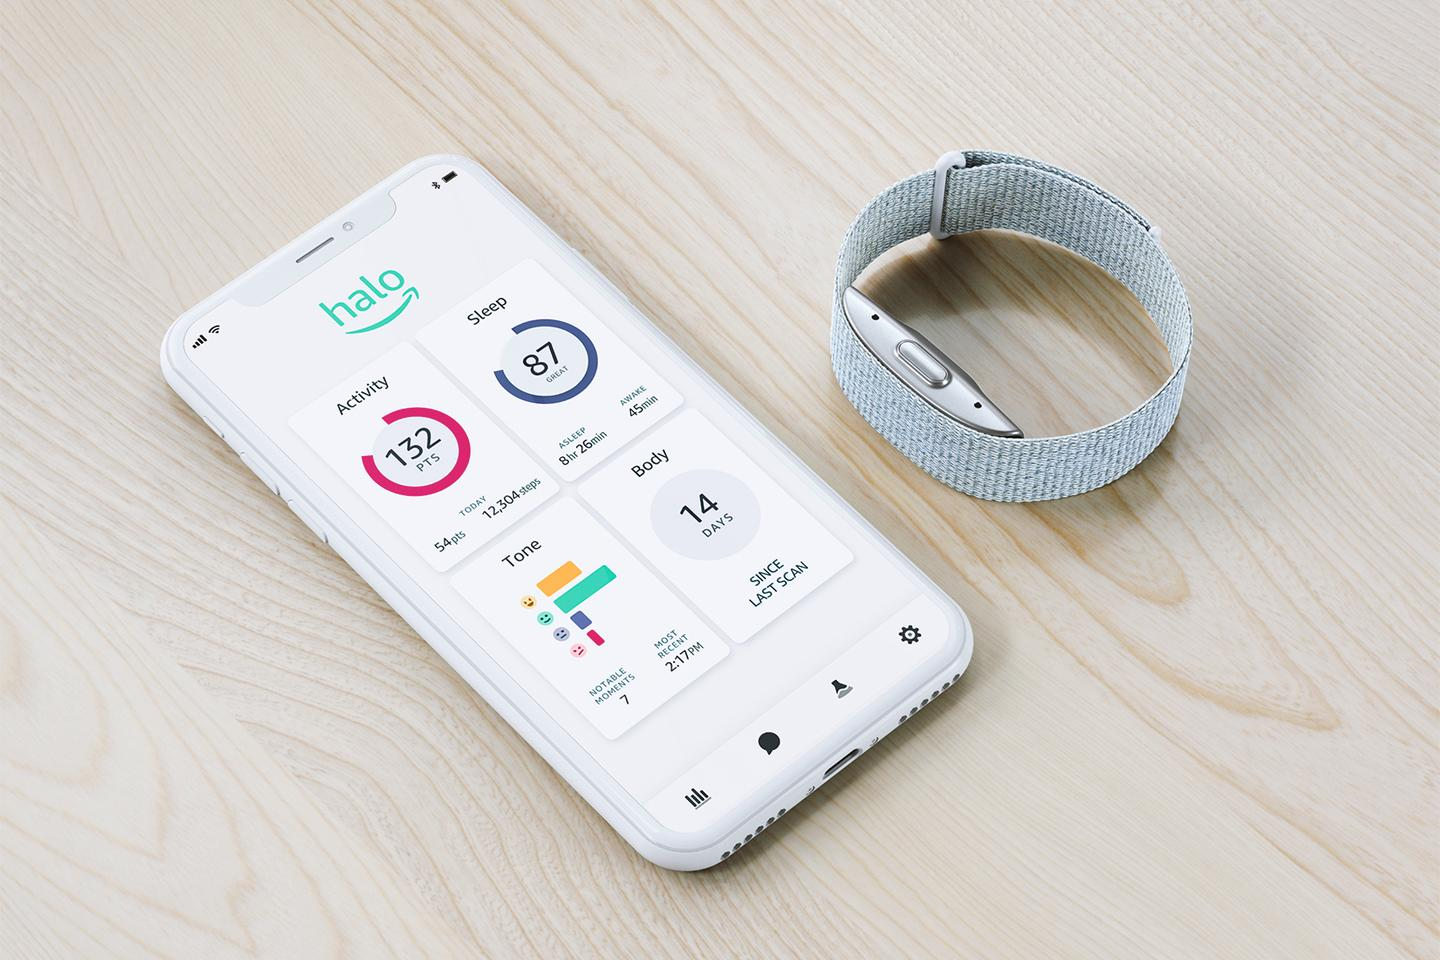 The Halo band comes with an analysis app for Android or iOS